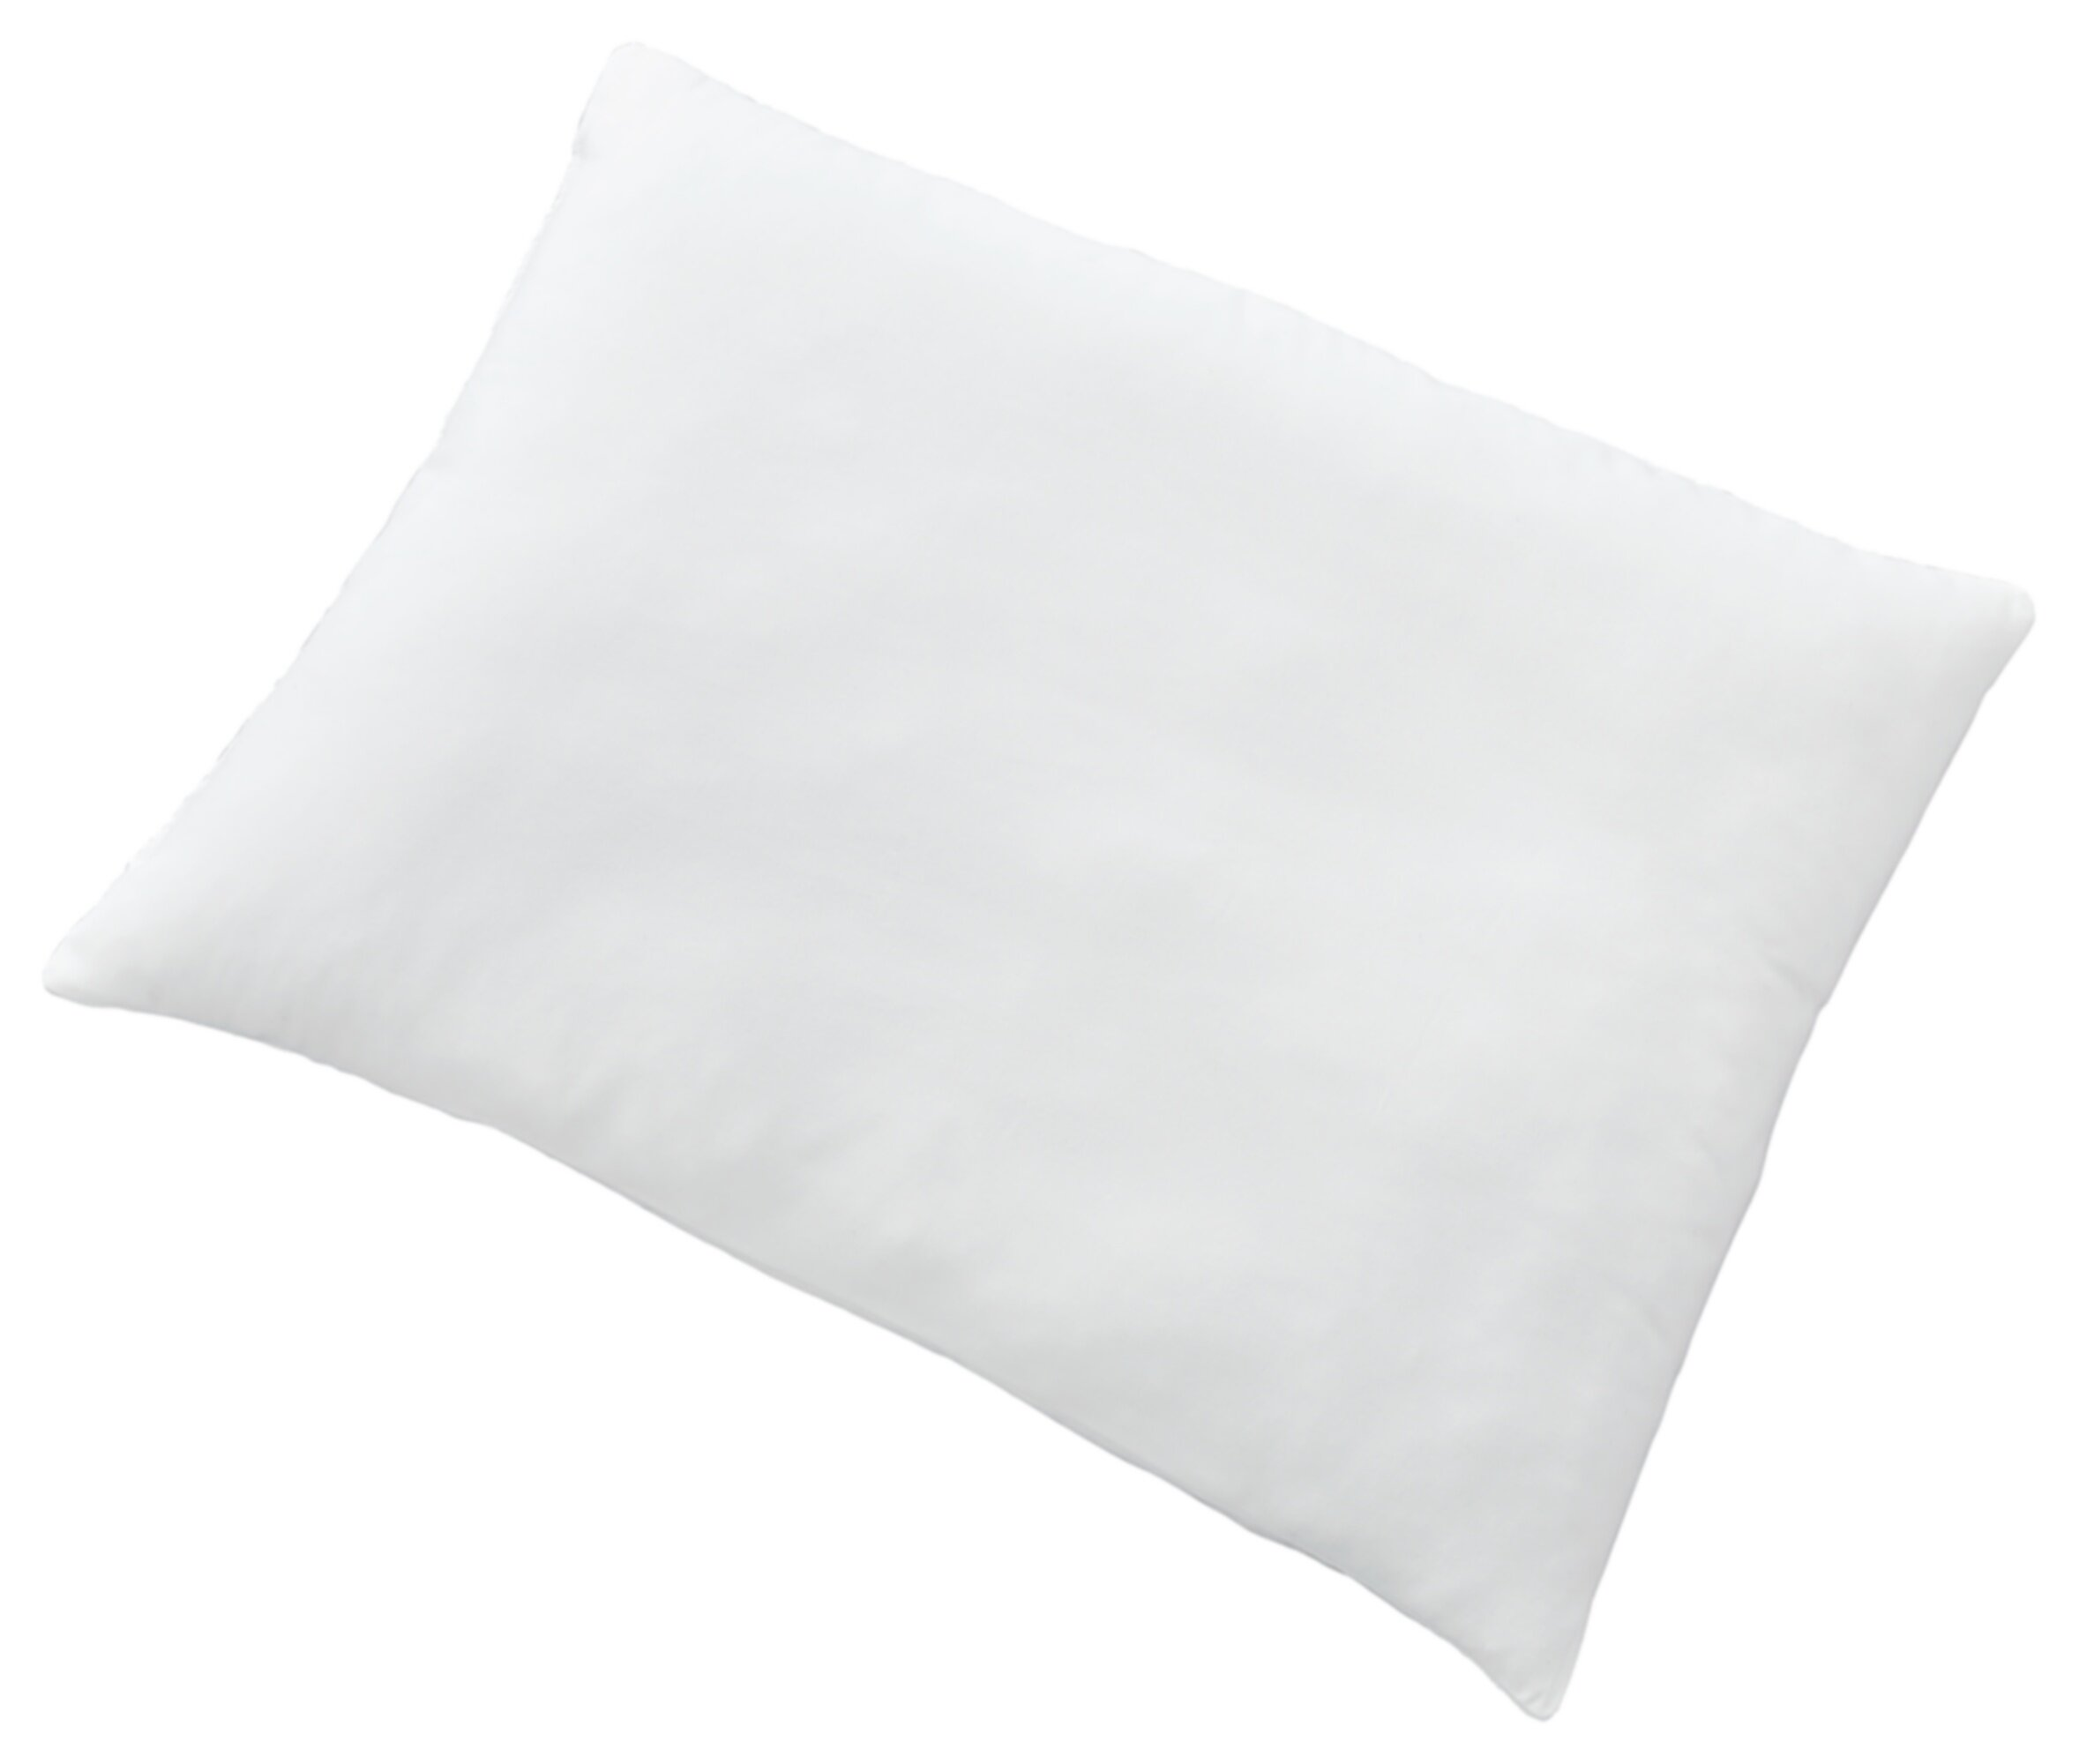 White Noise Fiber Plush Support Pillow Wayfair